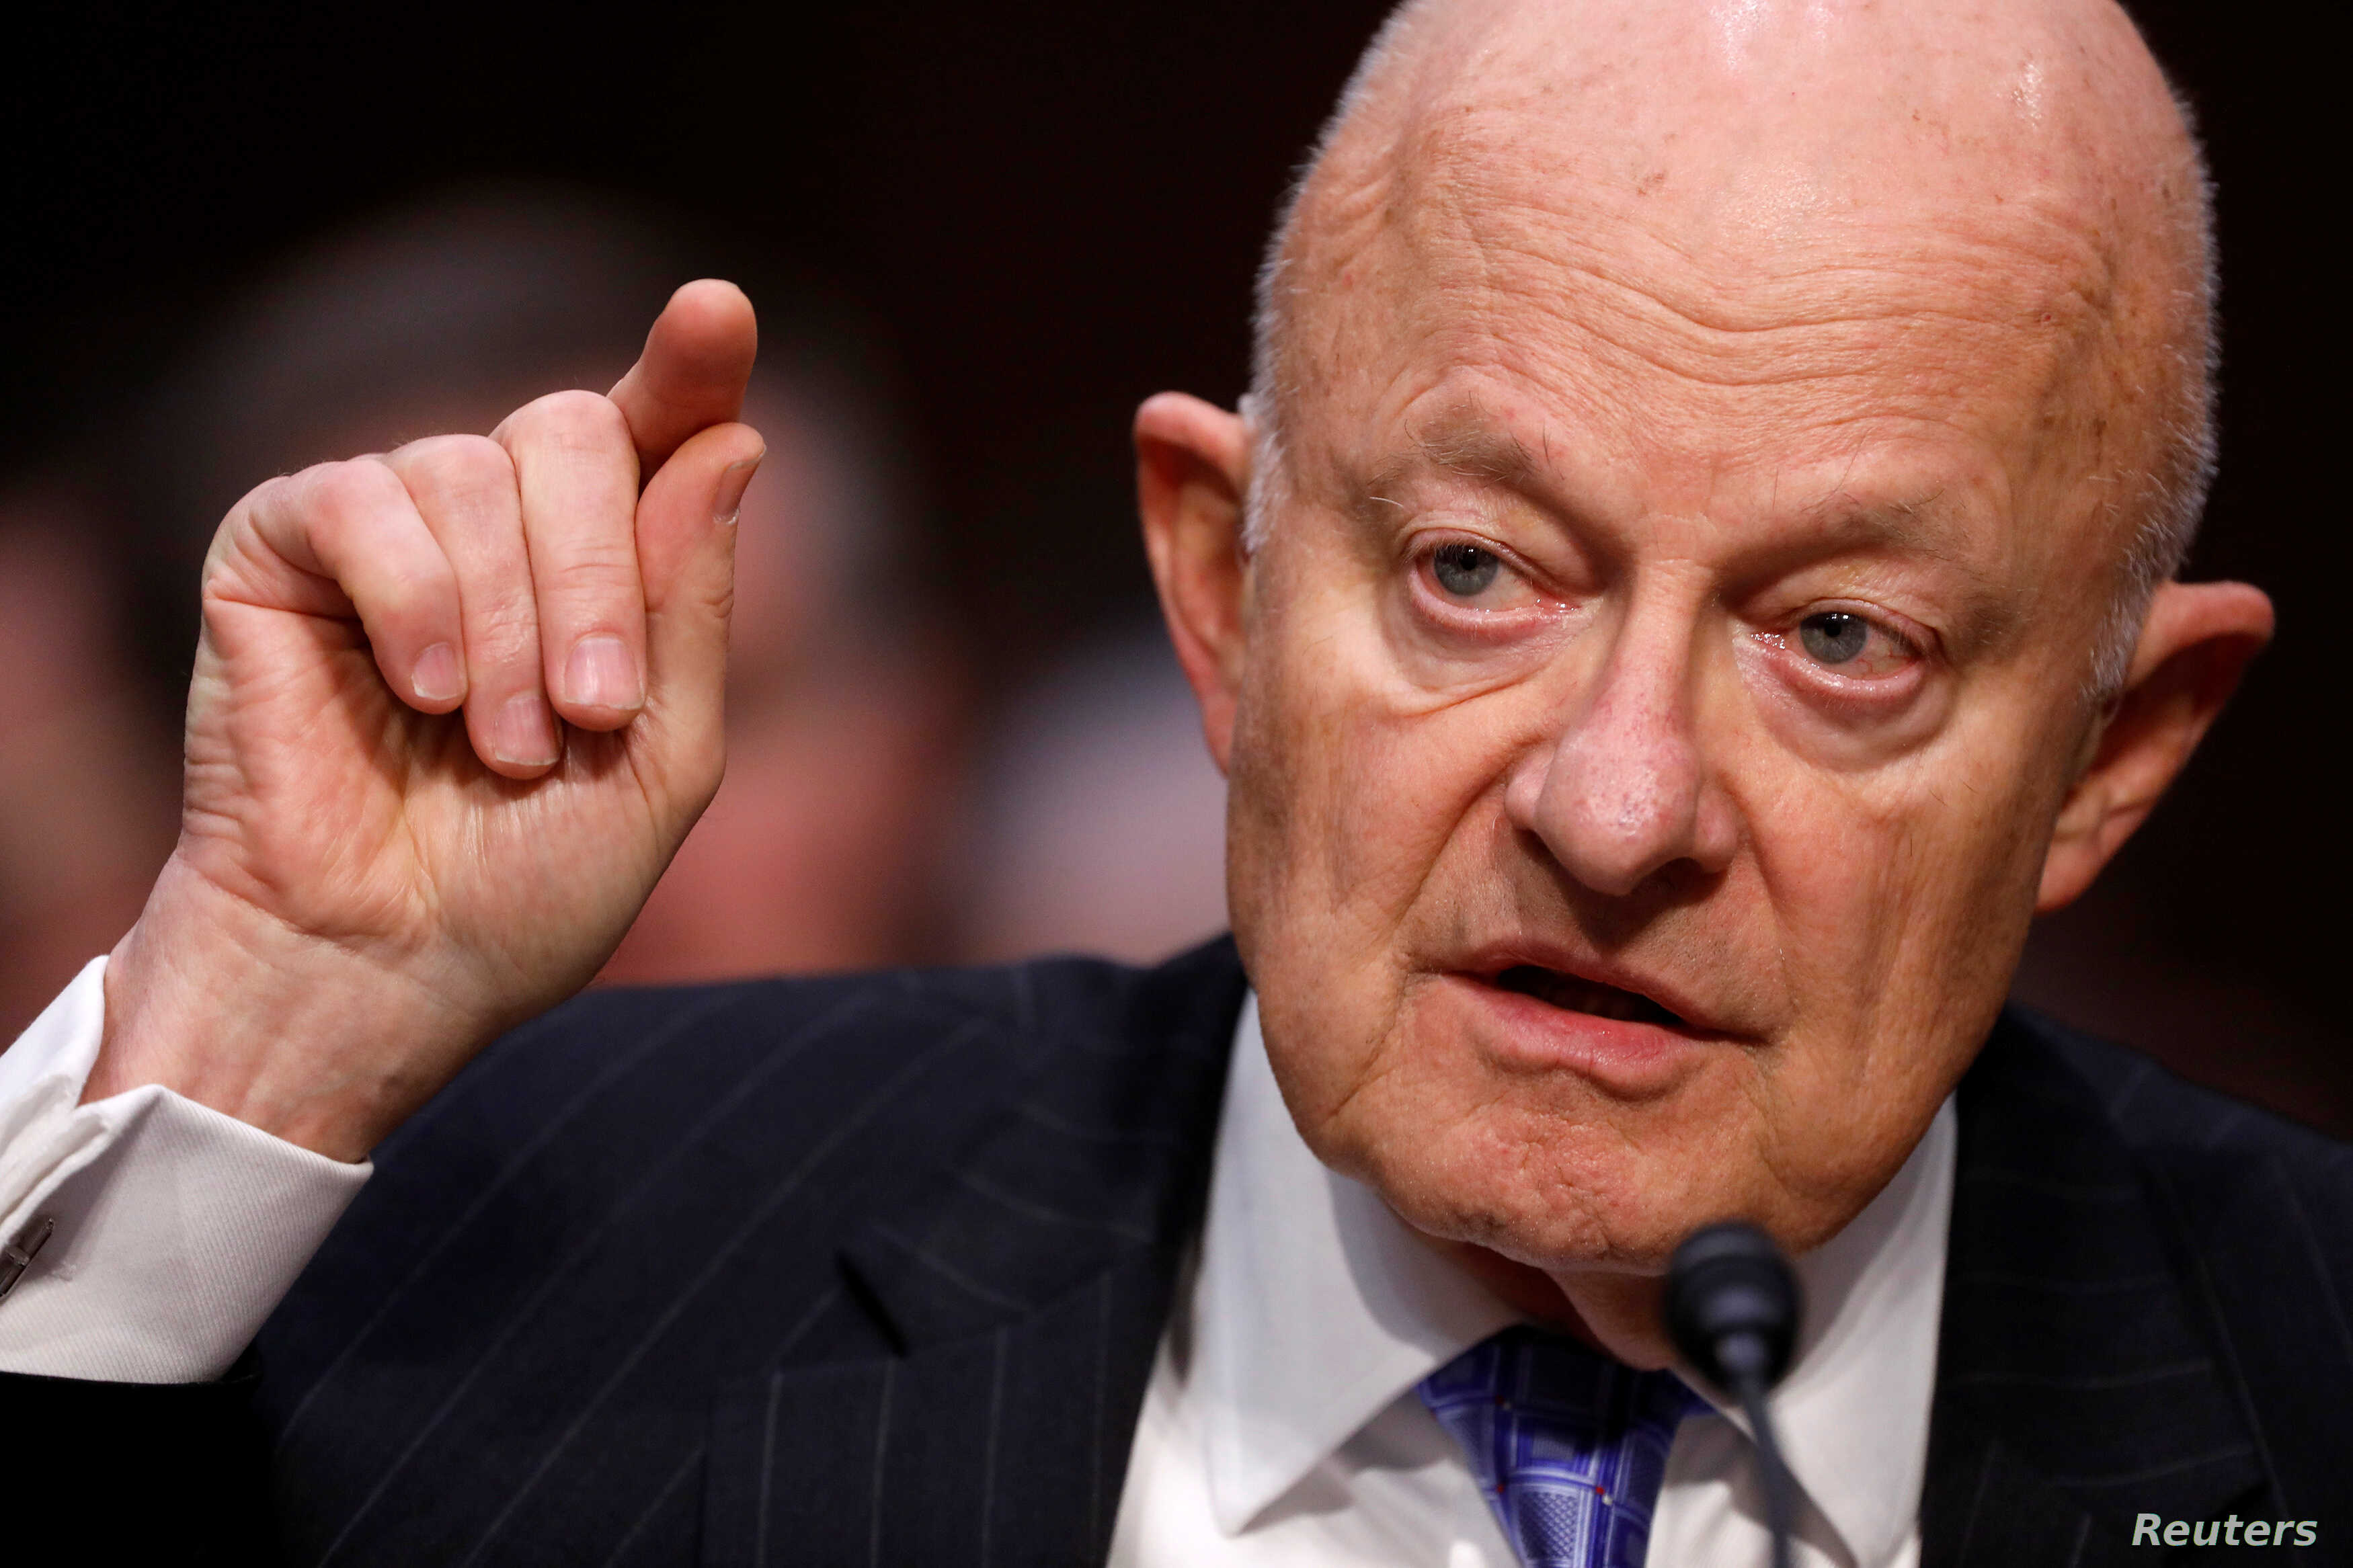 Former Director of National Intelligence James Clapper testifies about potential Russian interference in the presidential election before the Senate Judiciary Committee on Capitol Hill, Washington, D.C., U.S., May 8, 2017.